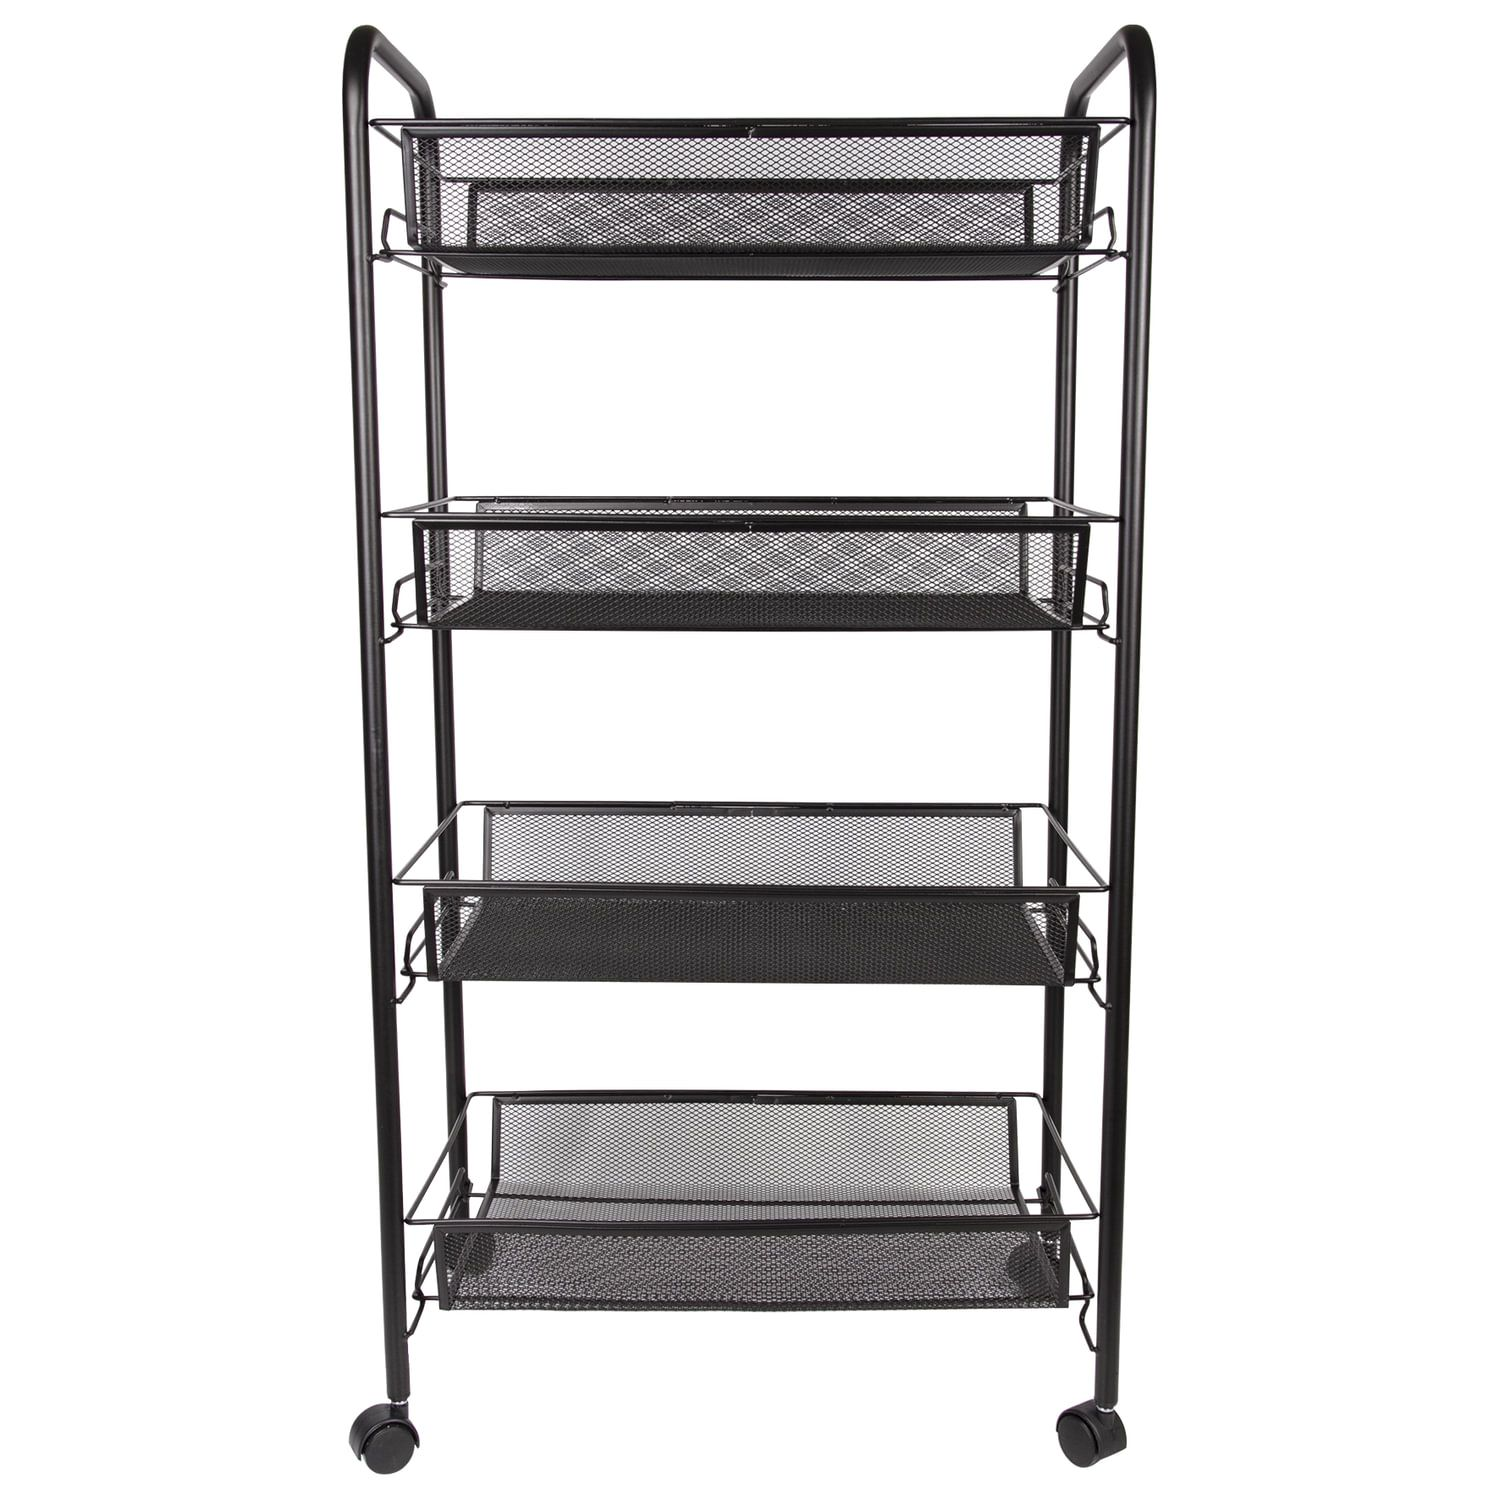 BRABIX / Office and household shelf (trolley) 4 tiers, on wheels, metal, black, 43.5х26х83.5 cm